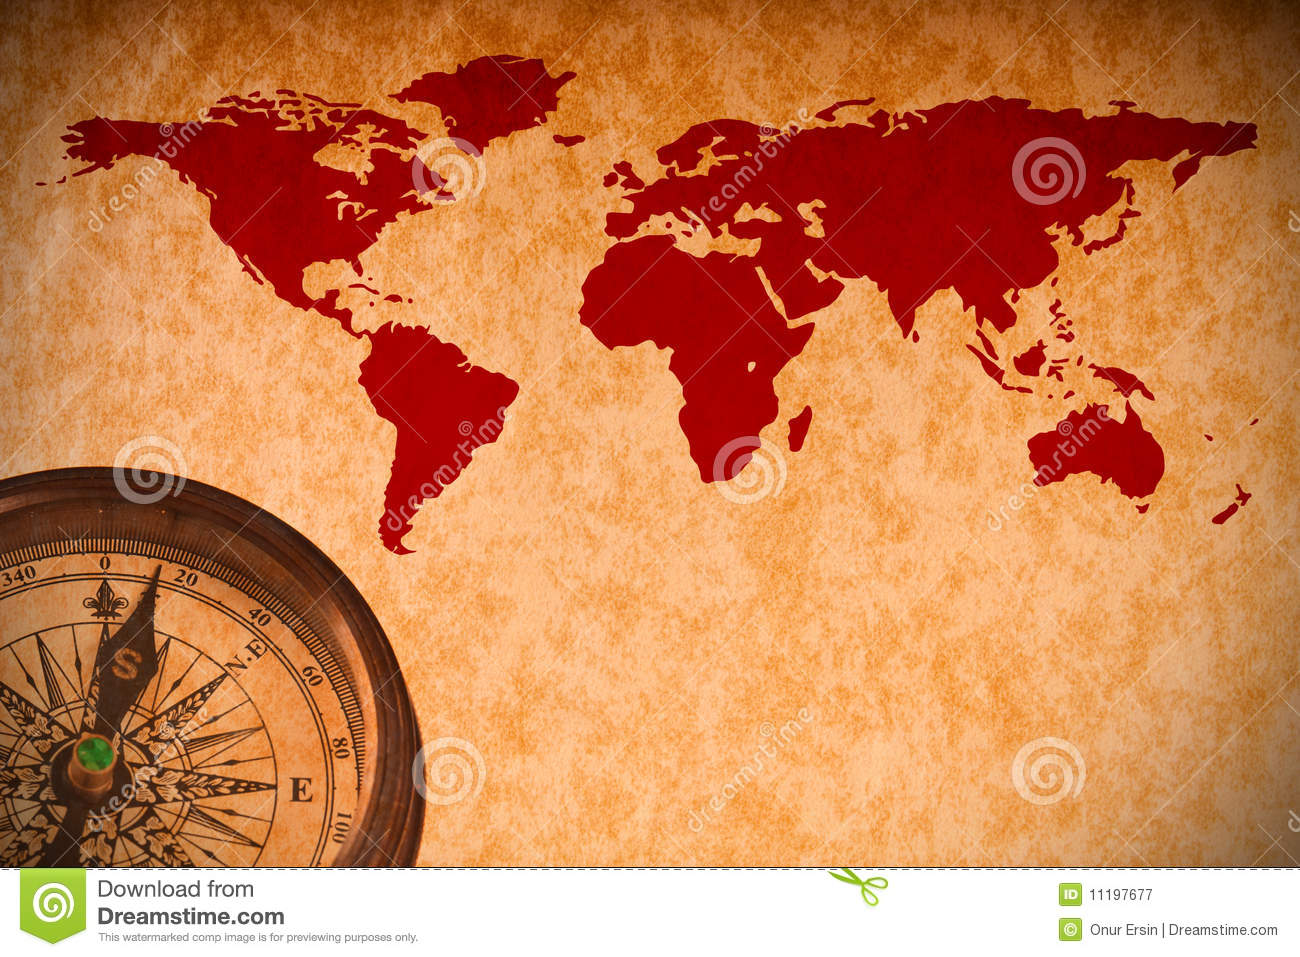 World map with compass on vintage paper stock image image of world map with compass on vintage paper gumiabroncs